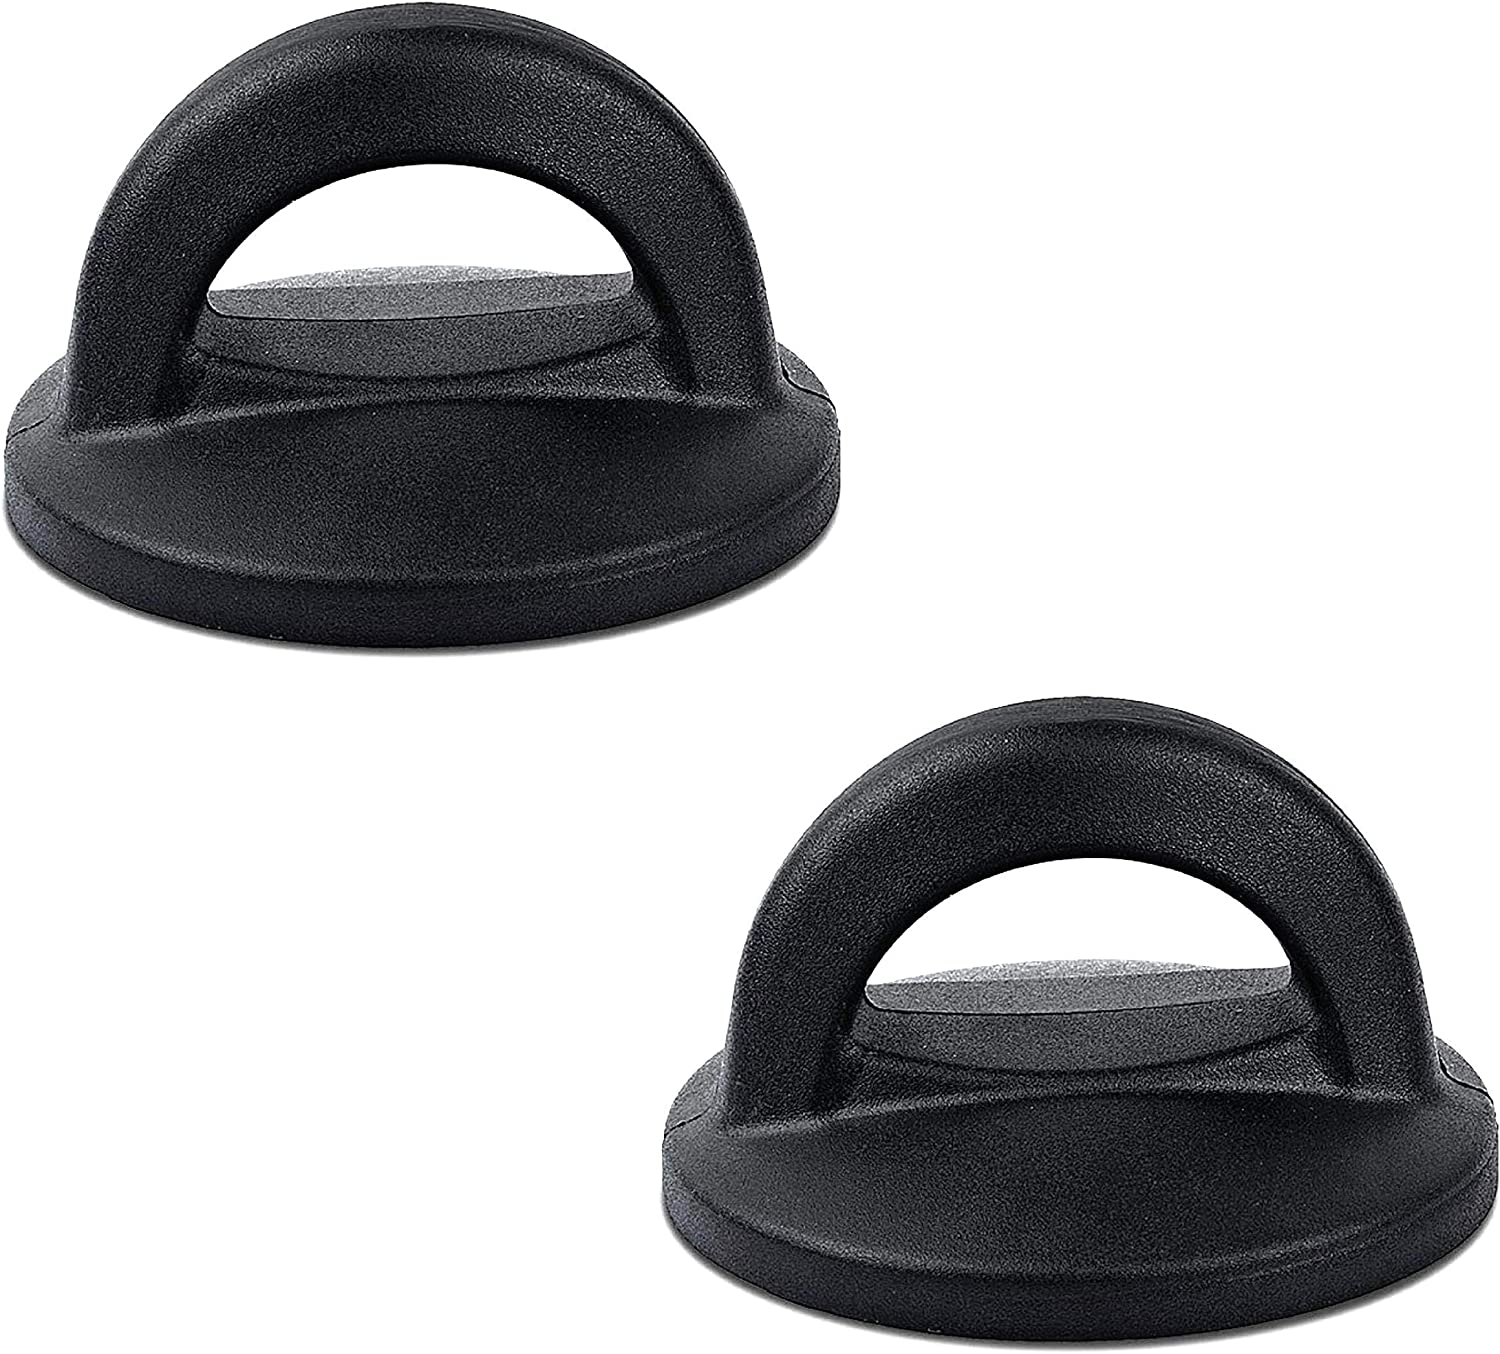 Universal Pot Lid Replacement Knobs Pan Lid Holding Handles (2 Pack)